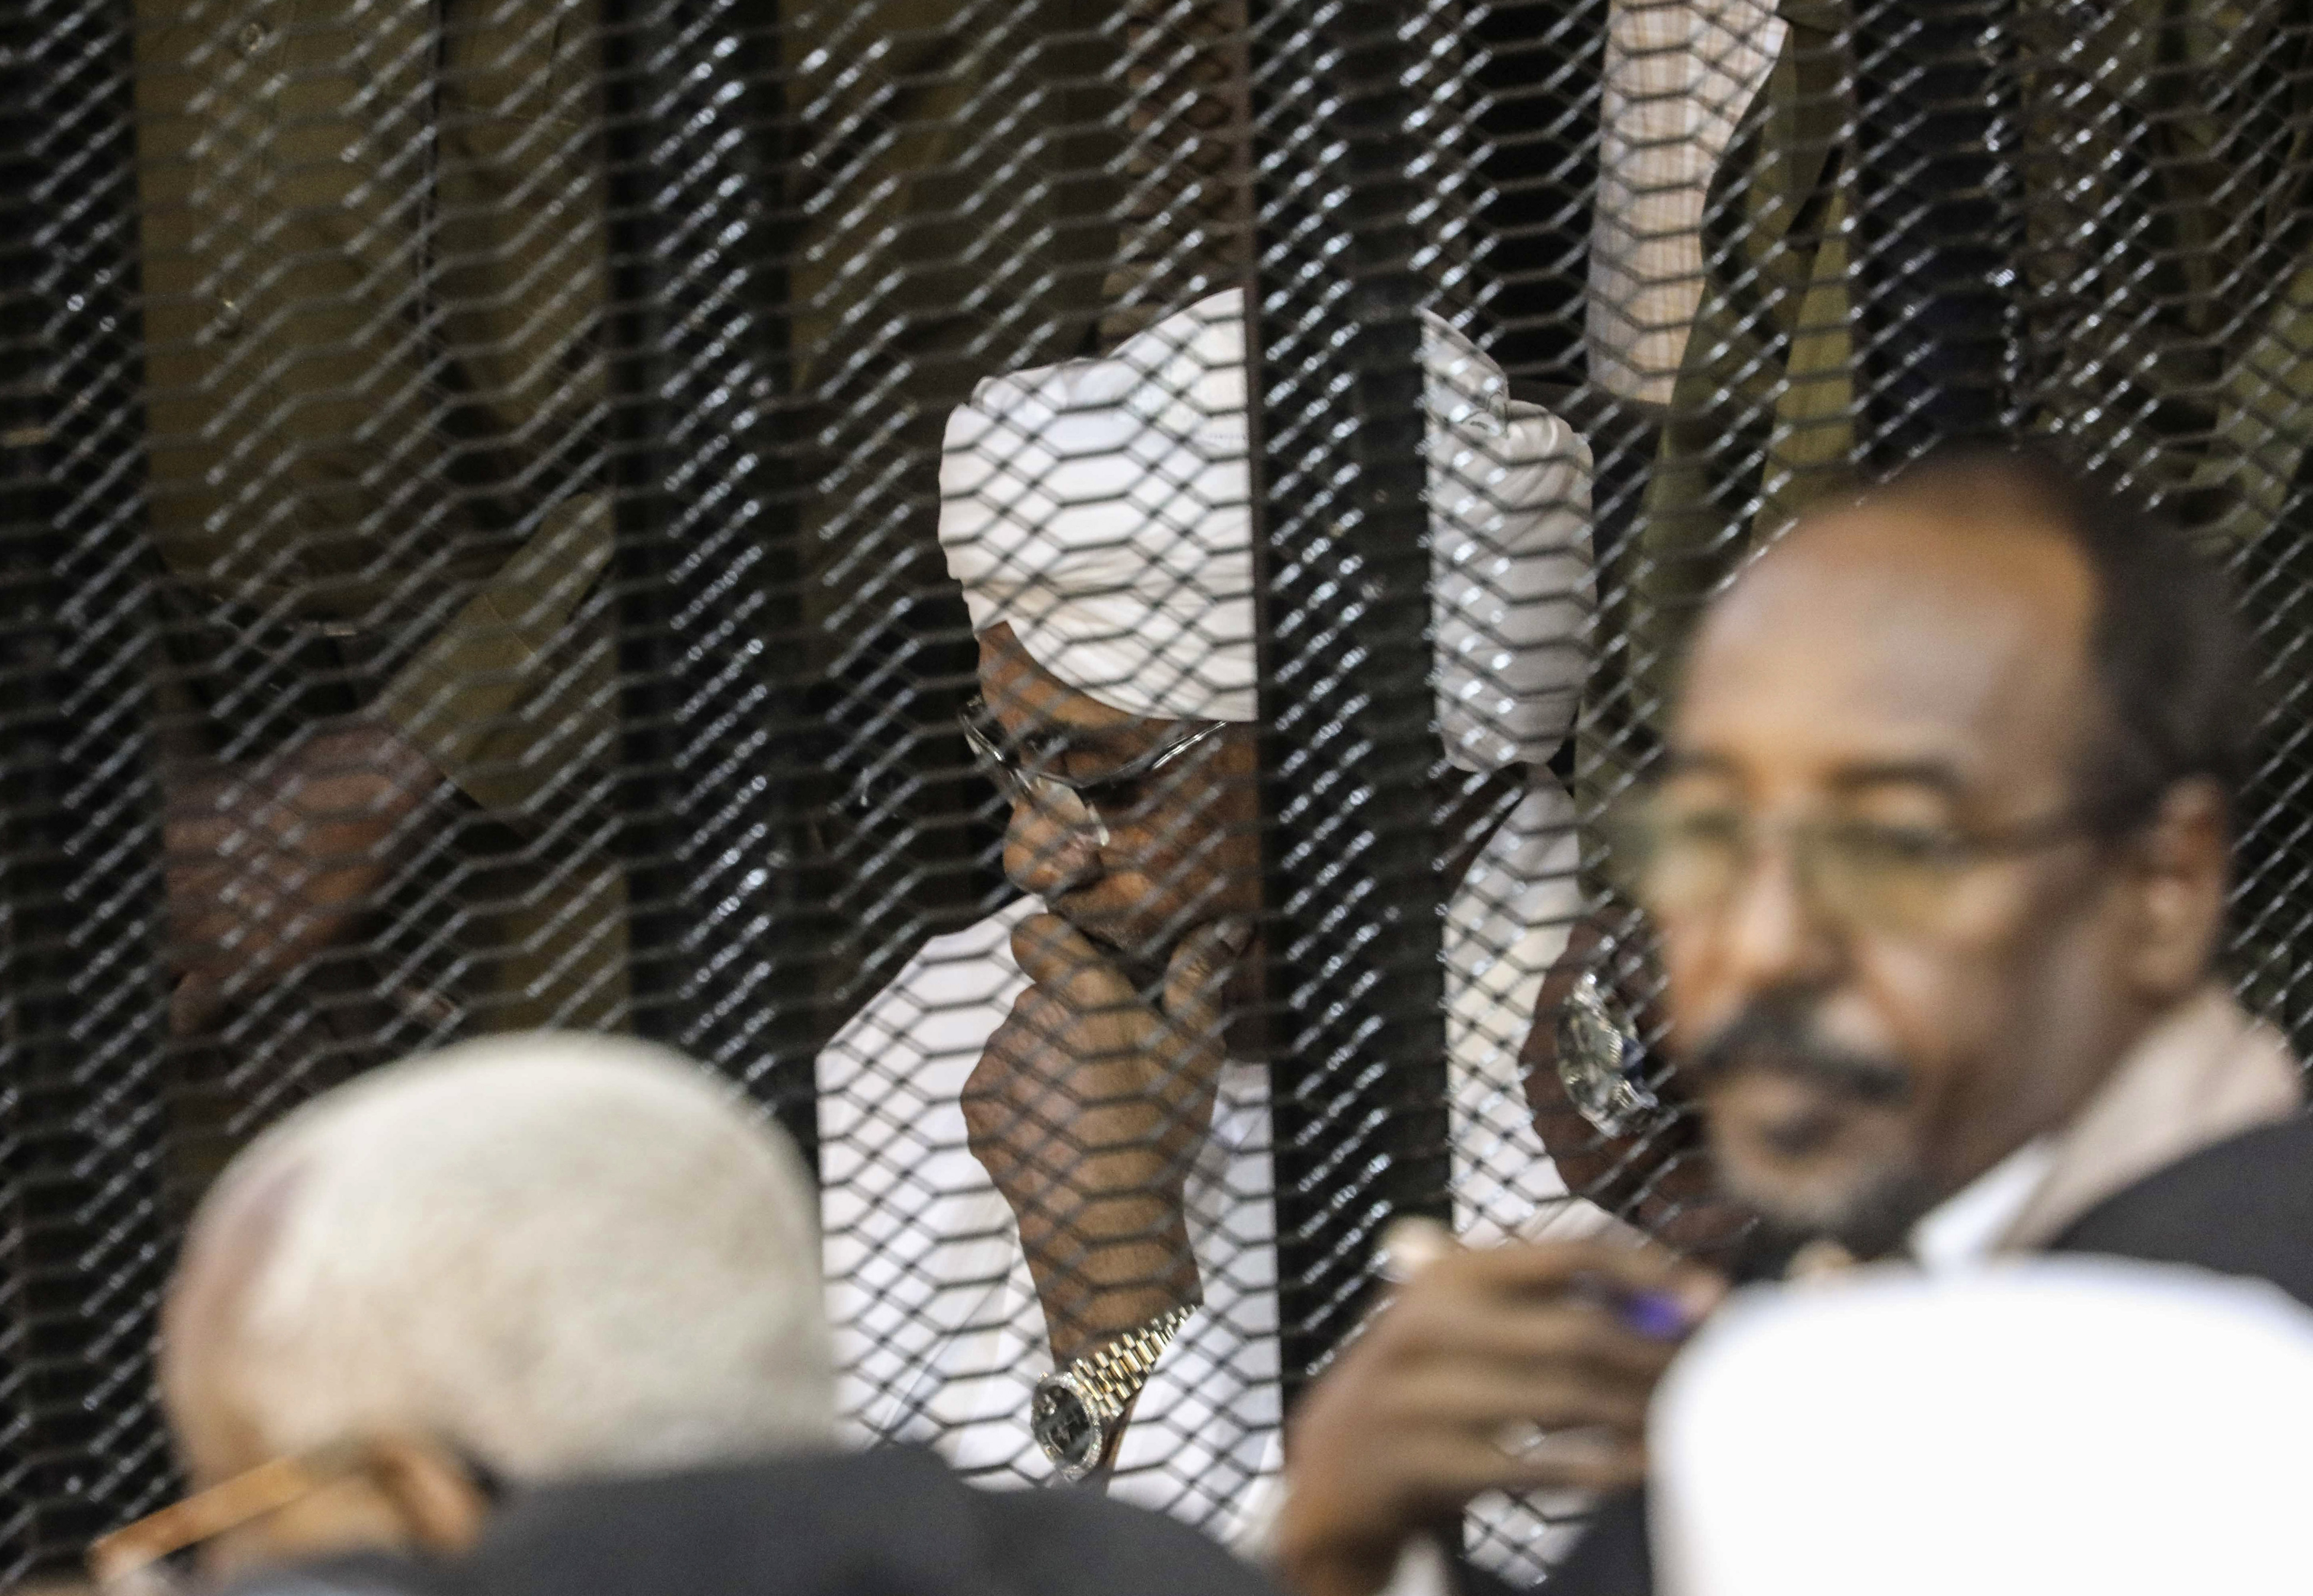 In this Aug. 24, 2019 file photo, Sudan's autocratic former President Omar al-Bashir sits in a cage during his trial on corruption and money laundering charges, in Khartoum, Sudan. On Tuesday, July 21, 2020, al-Bashir is back in court, this time facing charges of plotting the 1989 Islamist-backed coup that removed an elected government and brought him to power. The trial adjourned until Aug. 11.